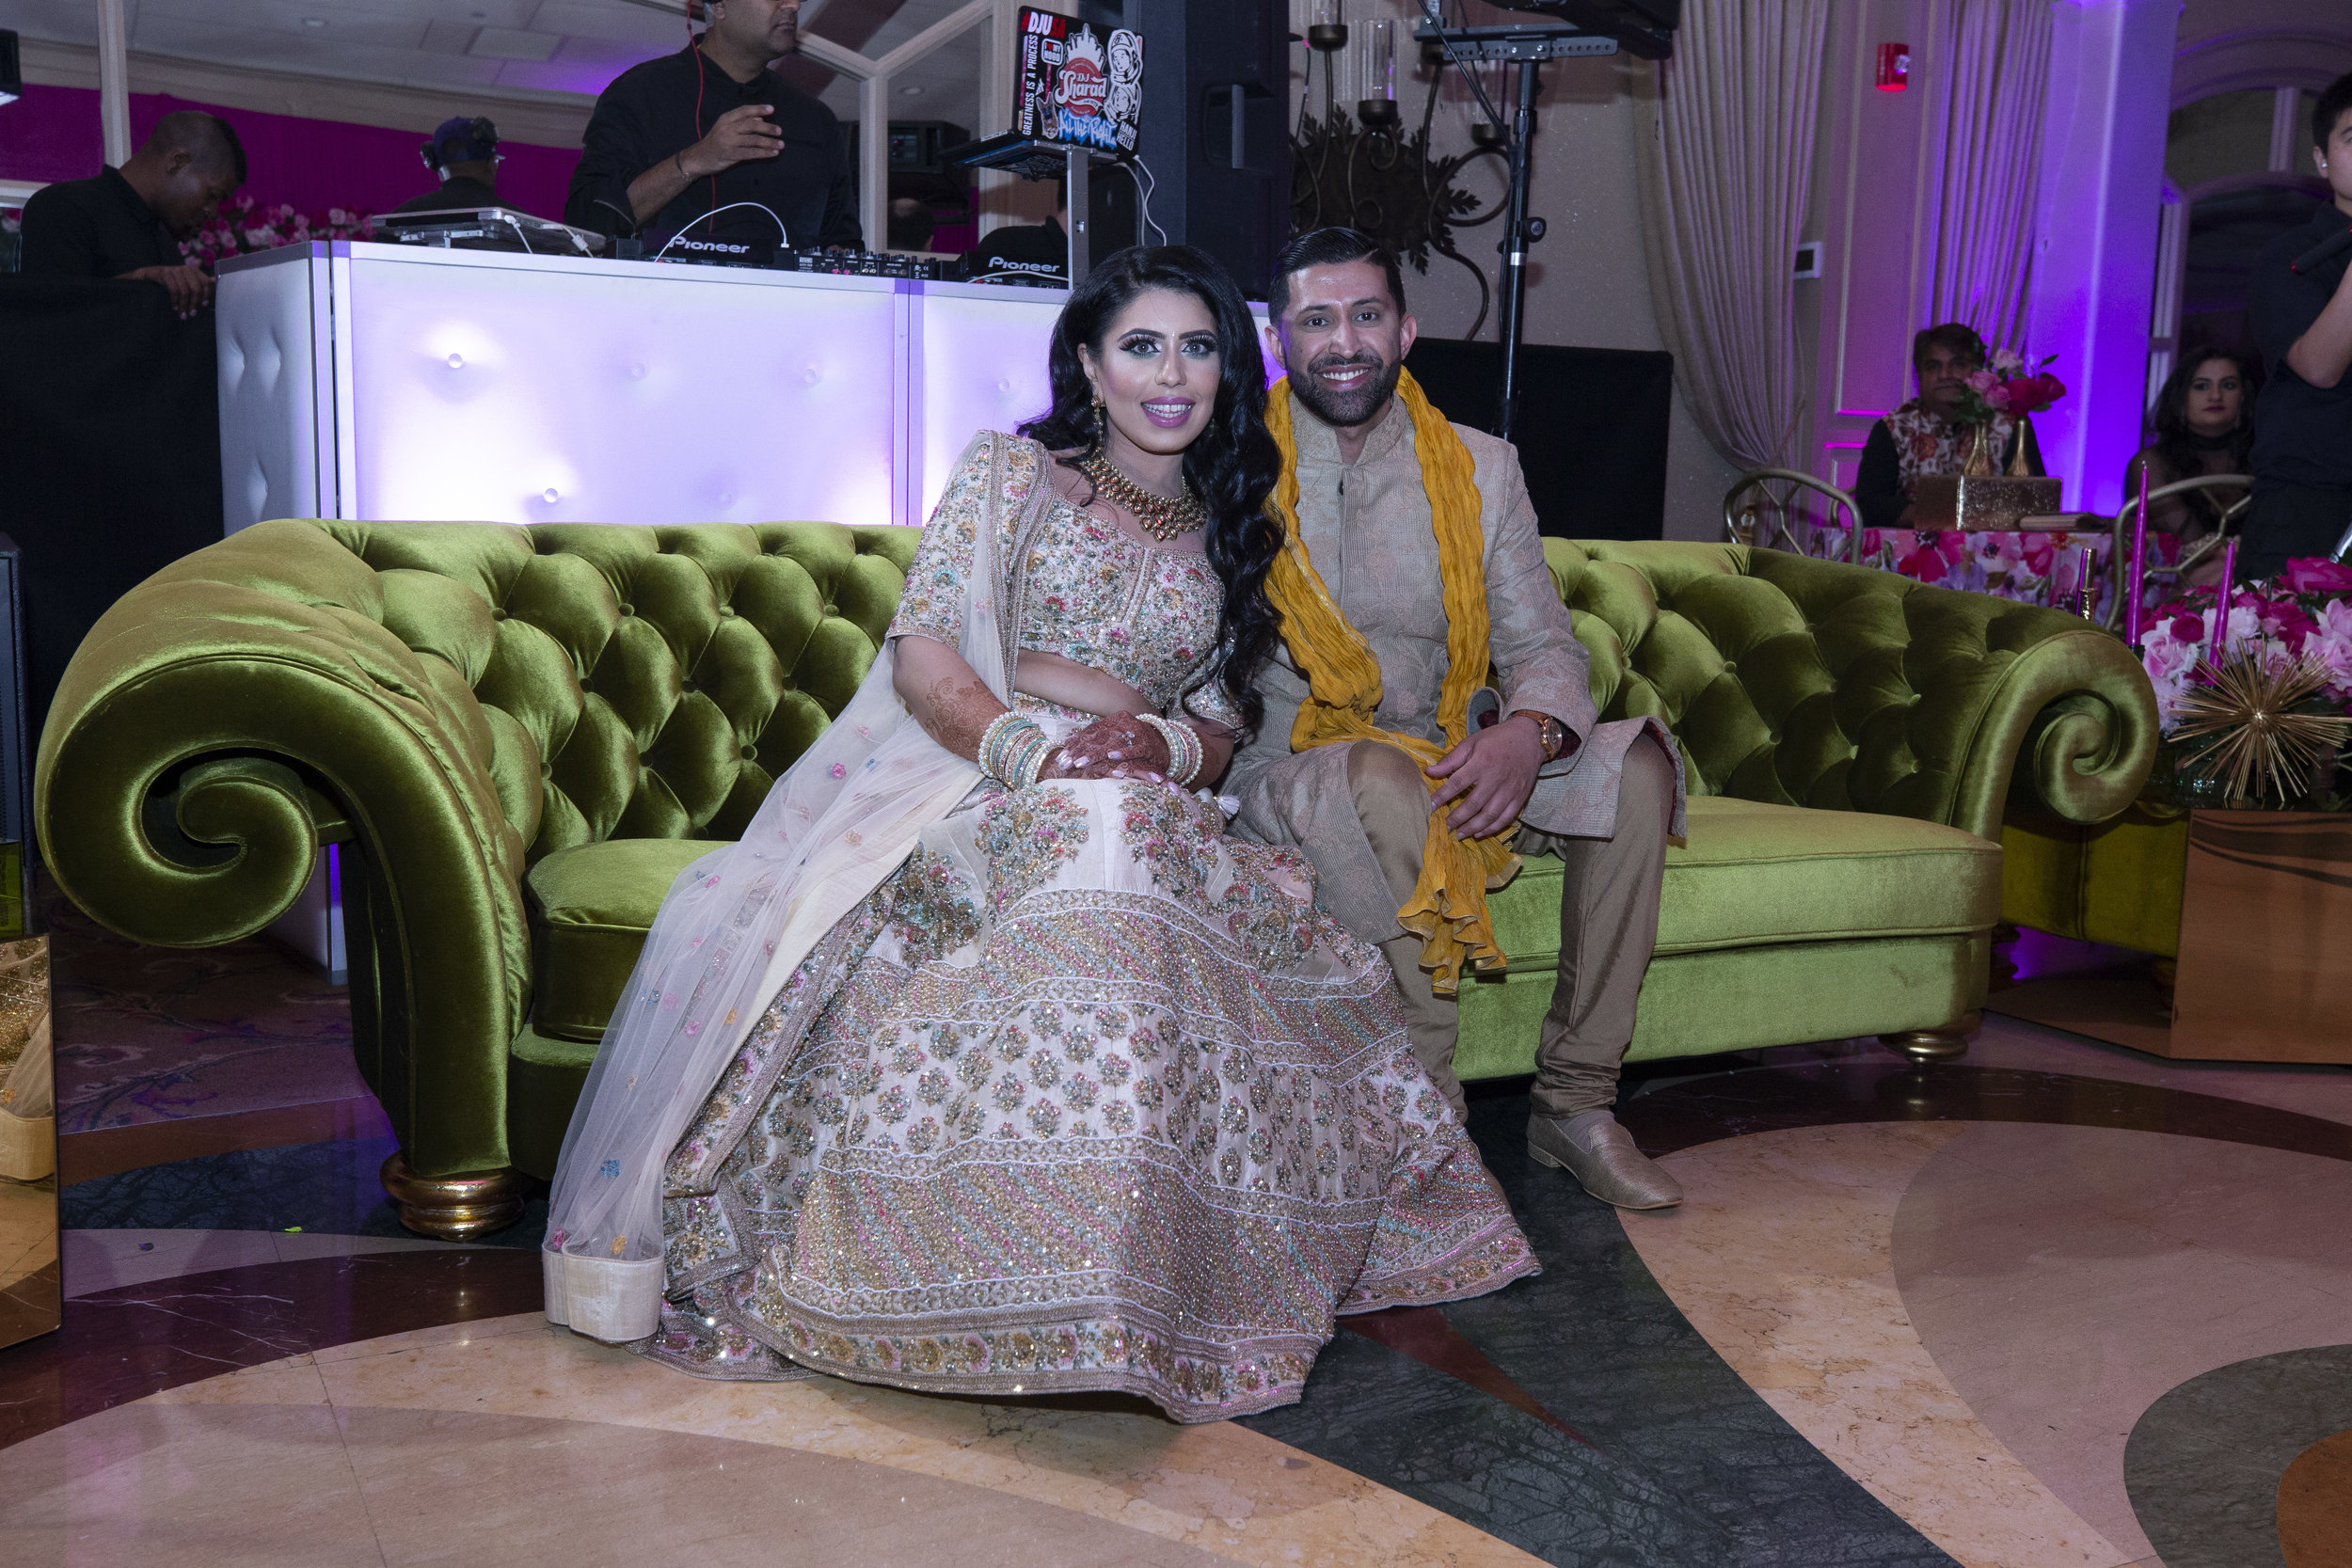 INDIAN WEDDING SANGEET BRIDE AND GROOM.JPG